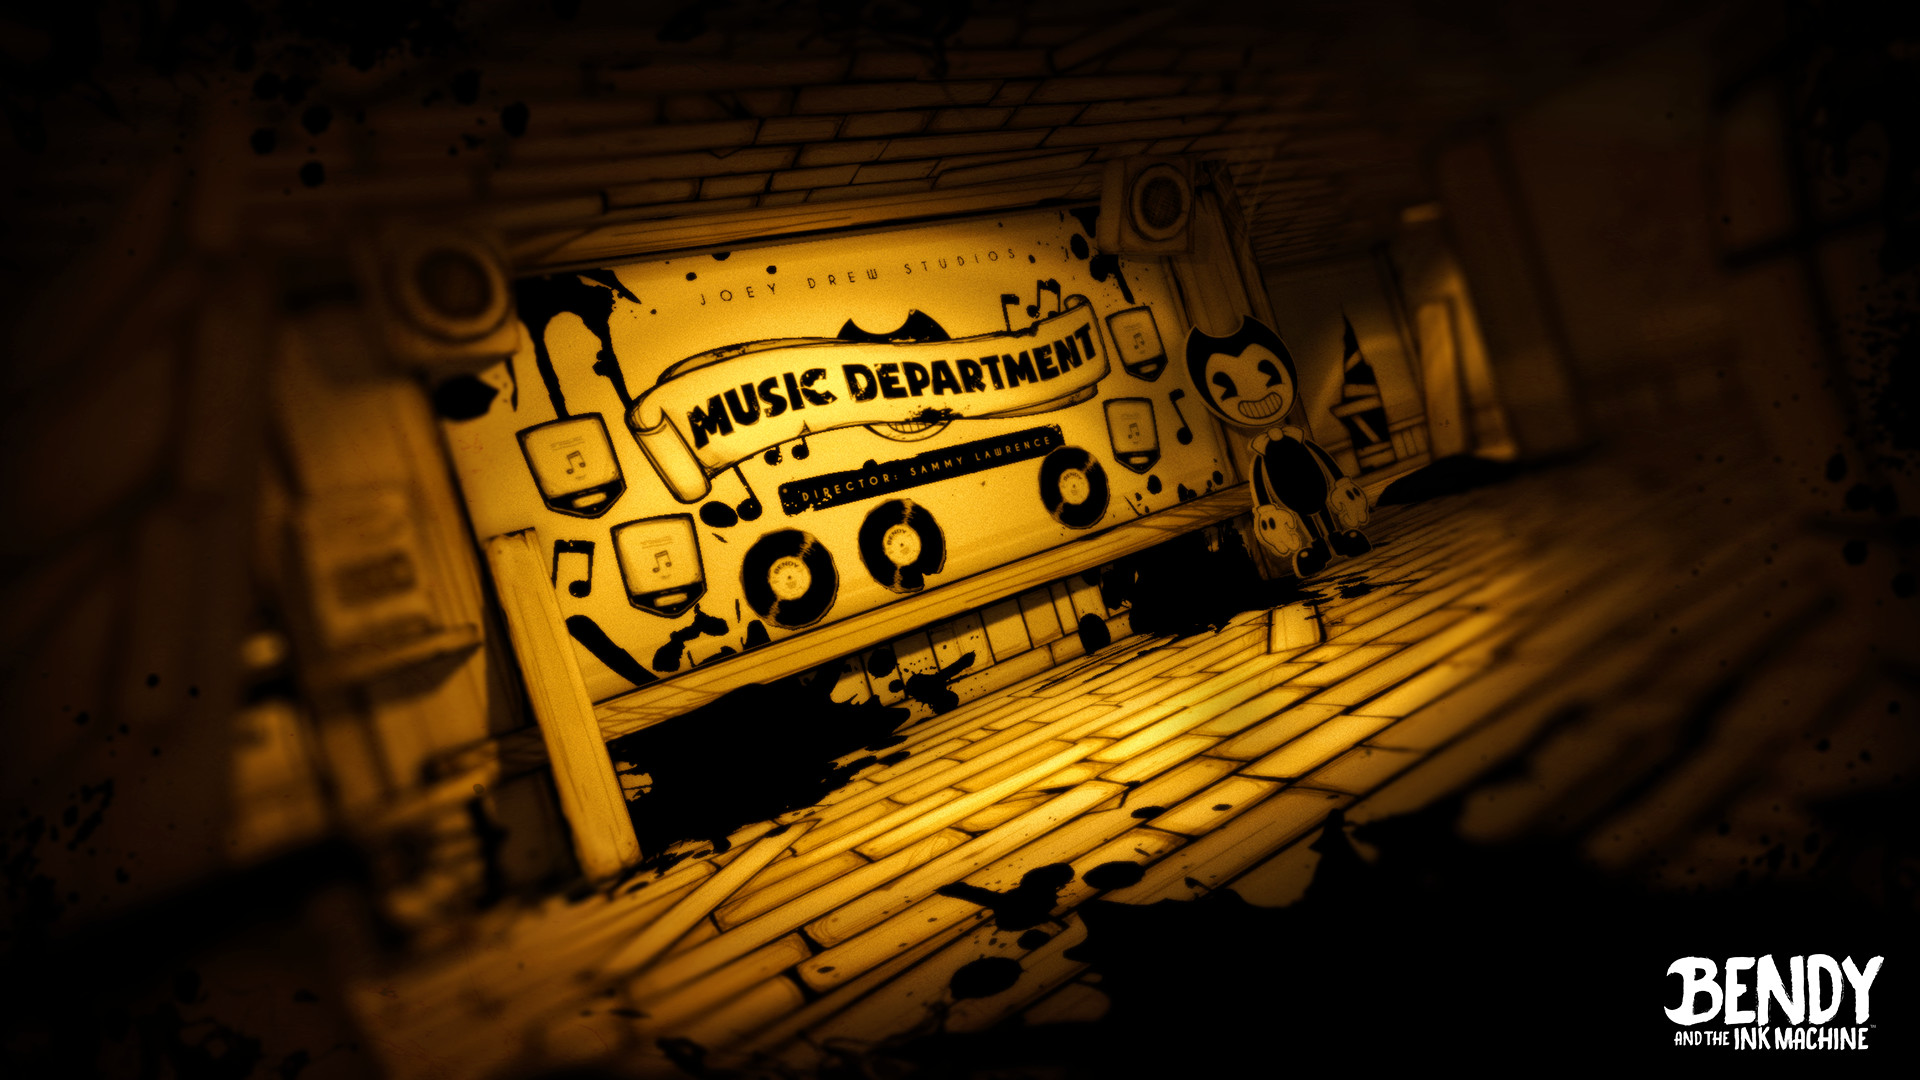 Bendy And The Ink Machine Wallpaper 1920x1080 Posted By John Johnson